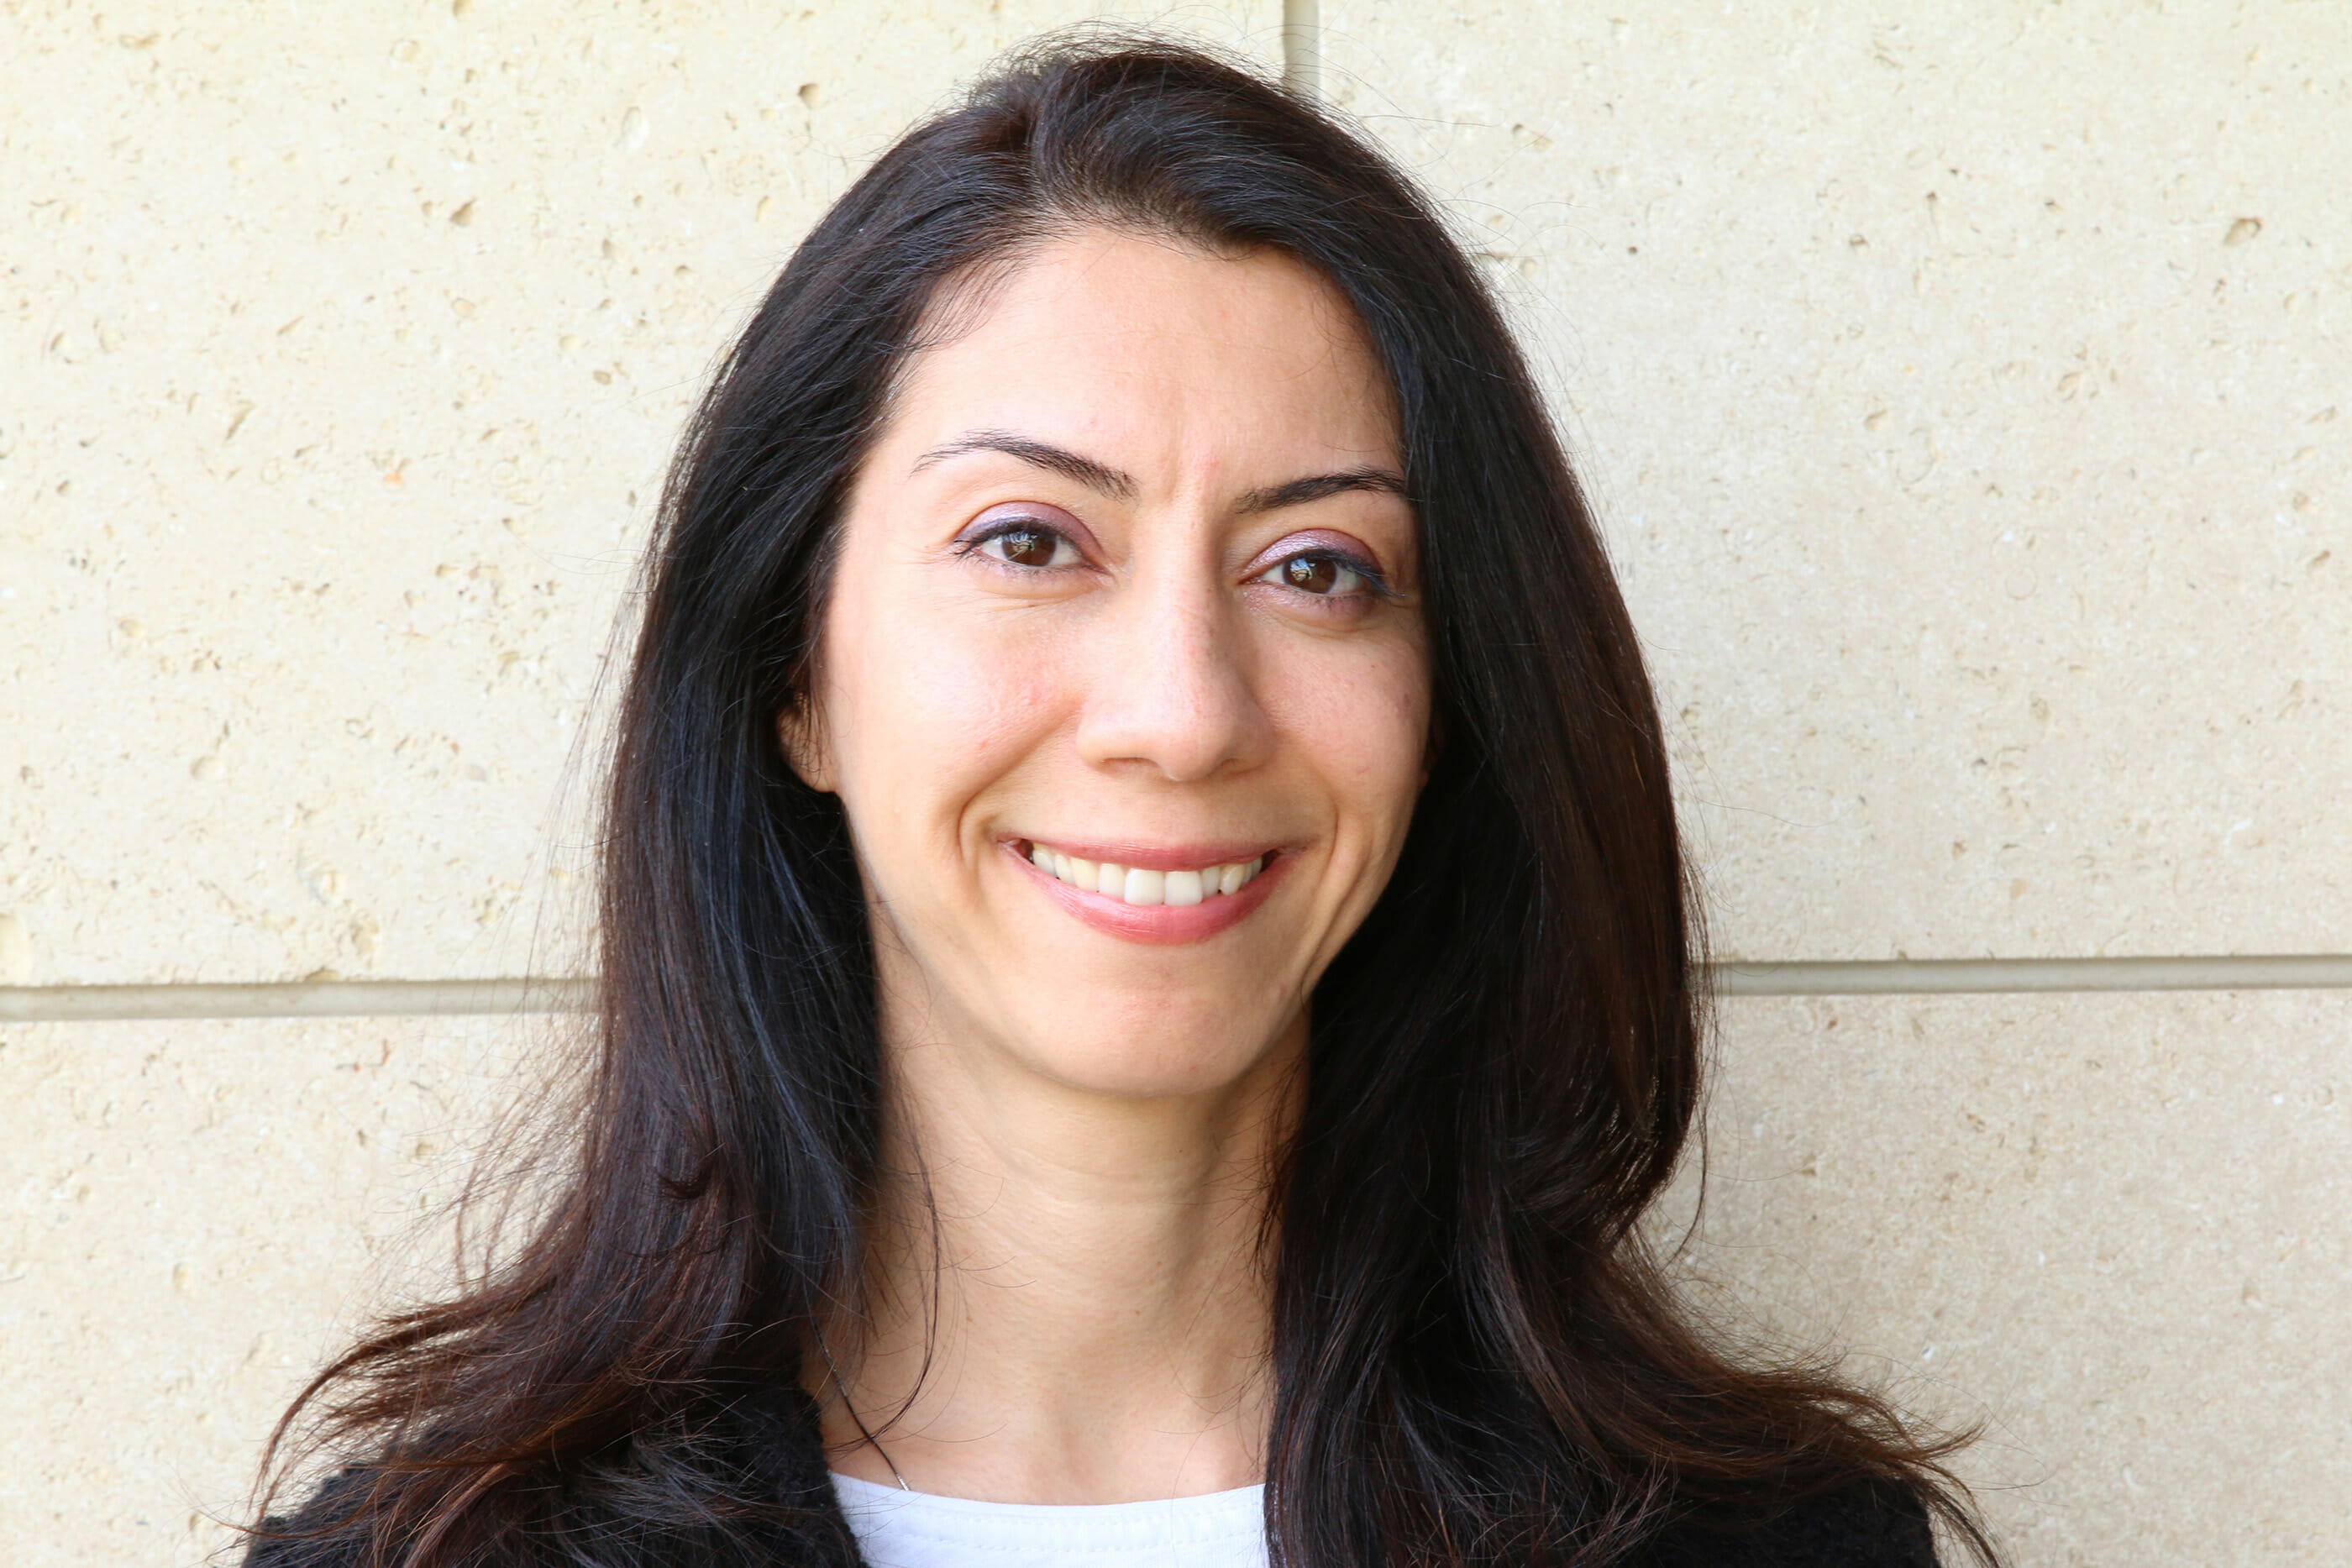 Doctor Newsha Ajami is a 2011 CCST Science & Technology Policy Fellow, and currently the director of Urban Water Policy with Stanford University's Water in the West program. Photo courtesy of Stanford University.